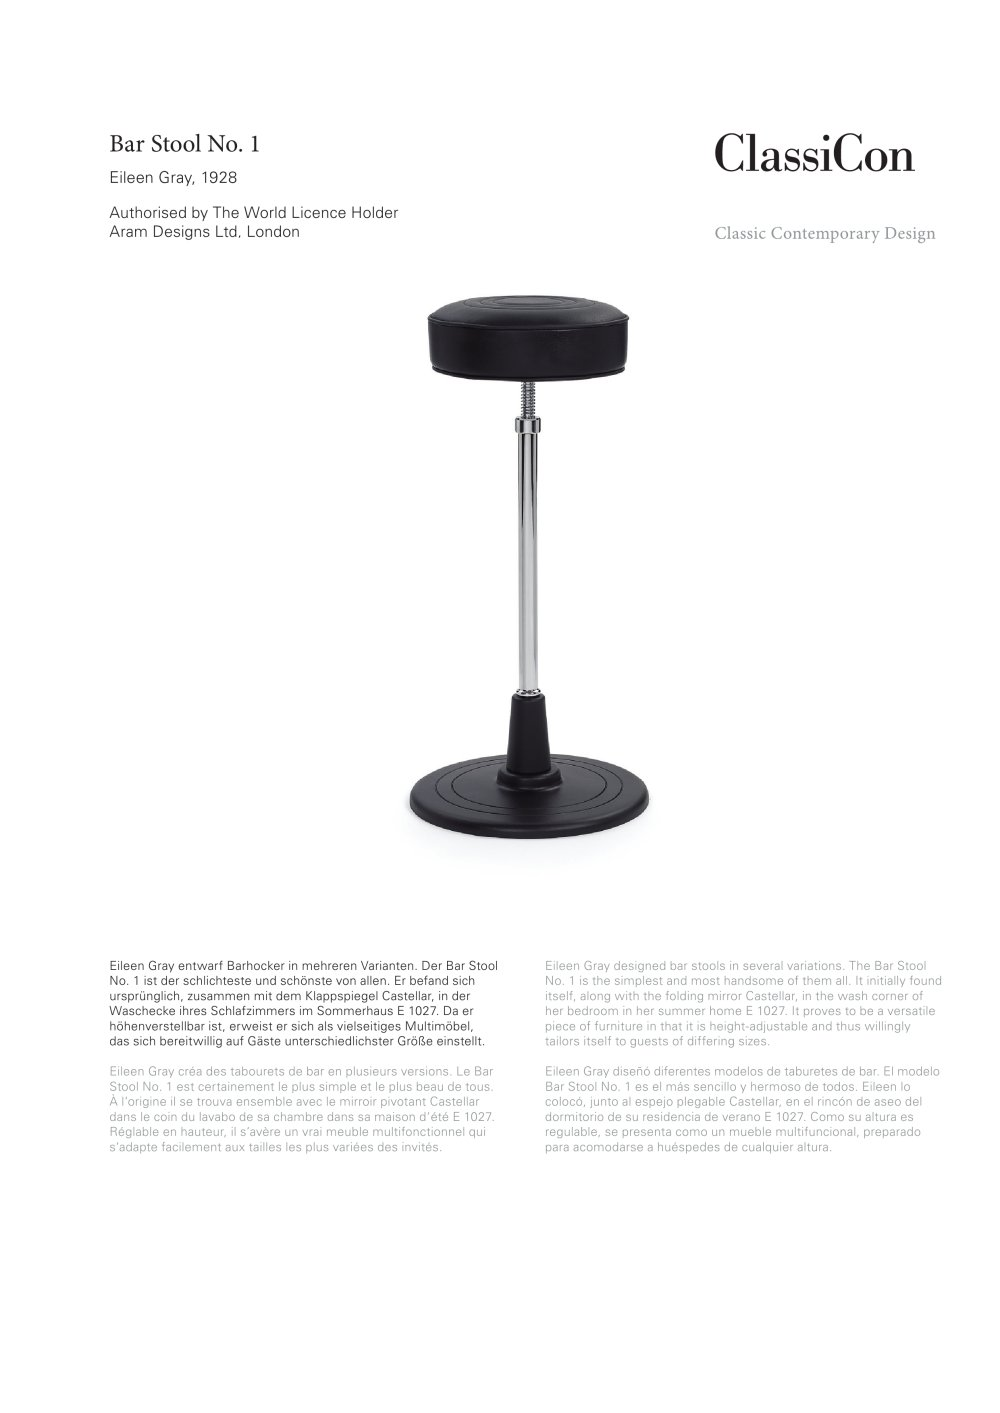 Bar Stool No 1 1928 Classicon Pdf Catalogues Documentation  # Muebles Himher S A